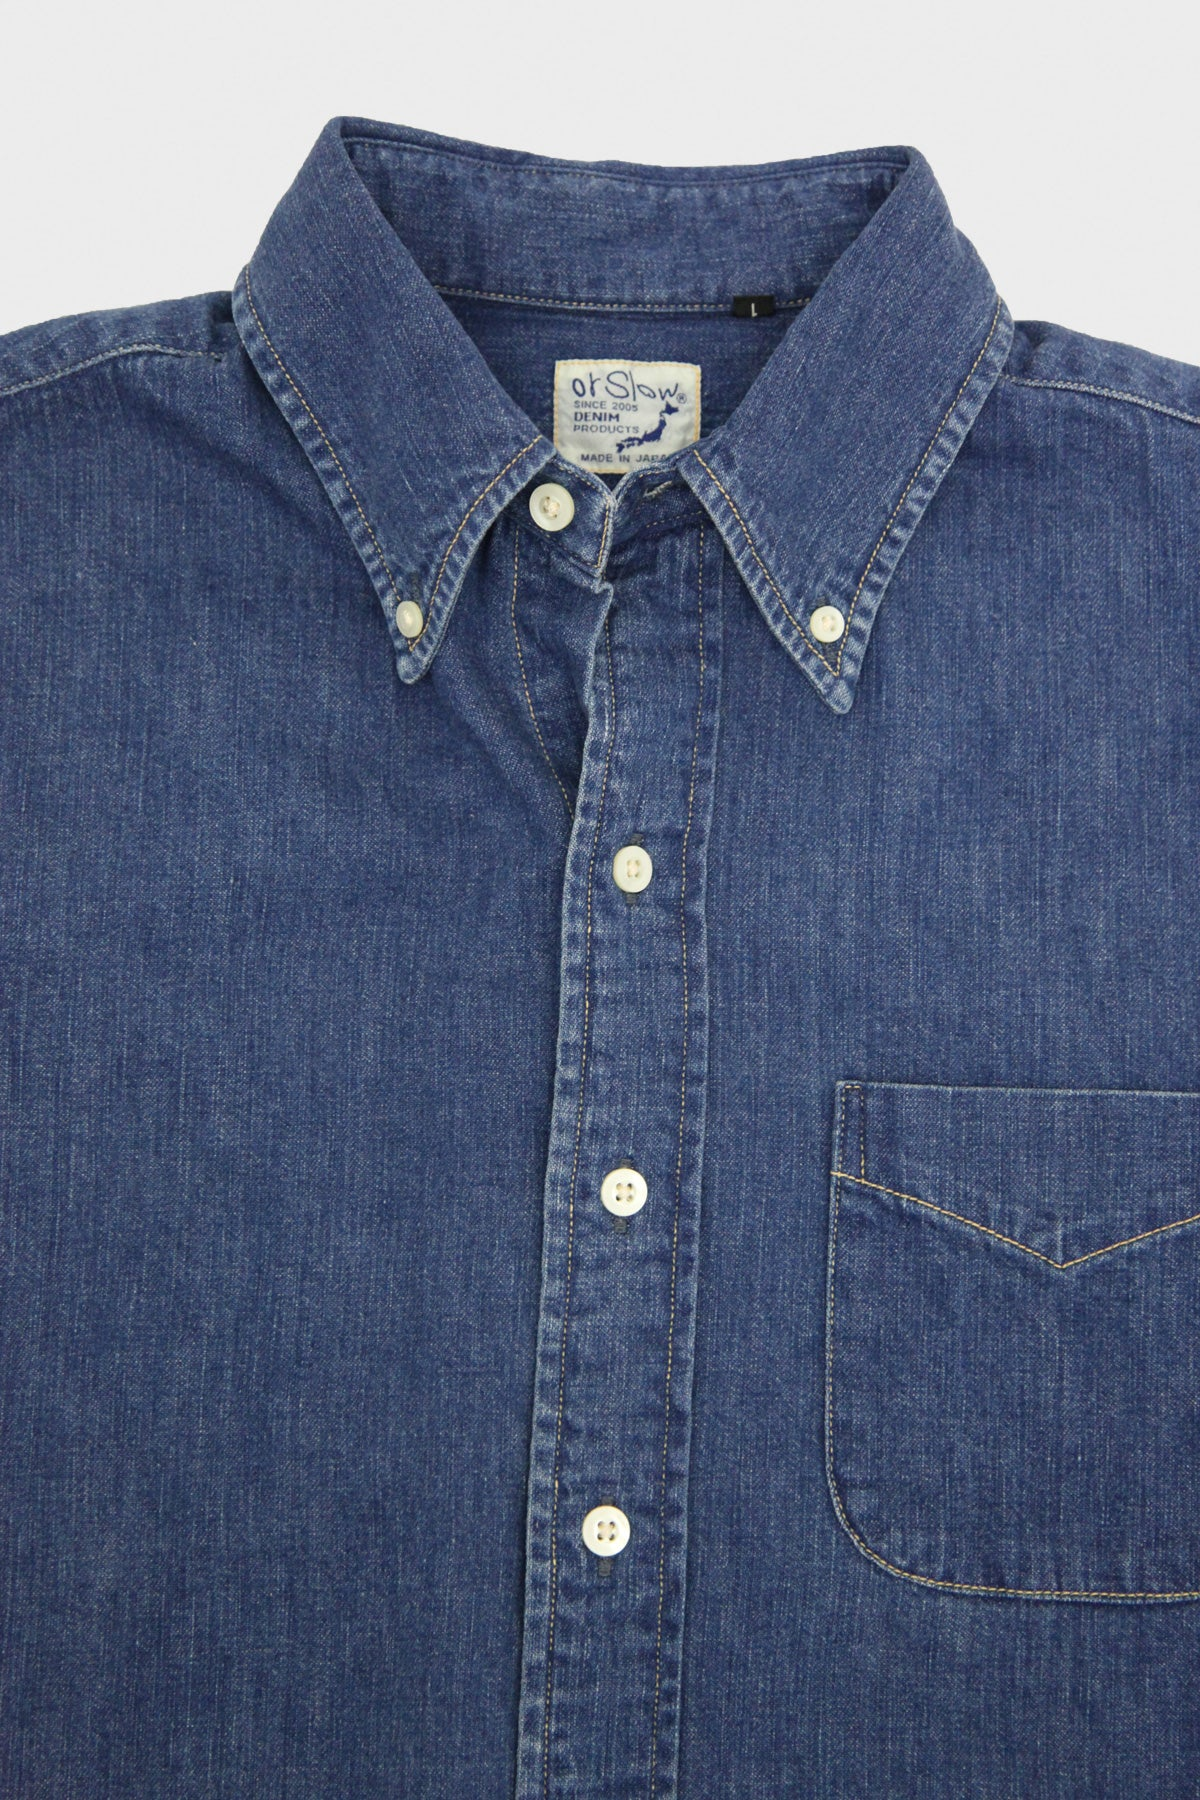 orSlow - Button Down Shirt - Denim Used - Canoe Club